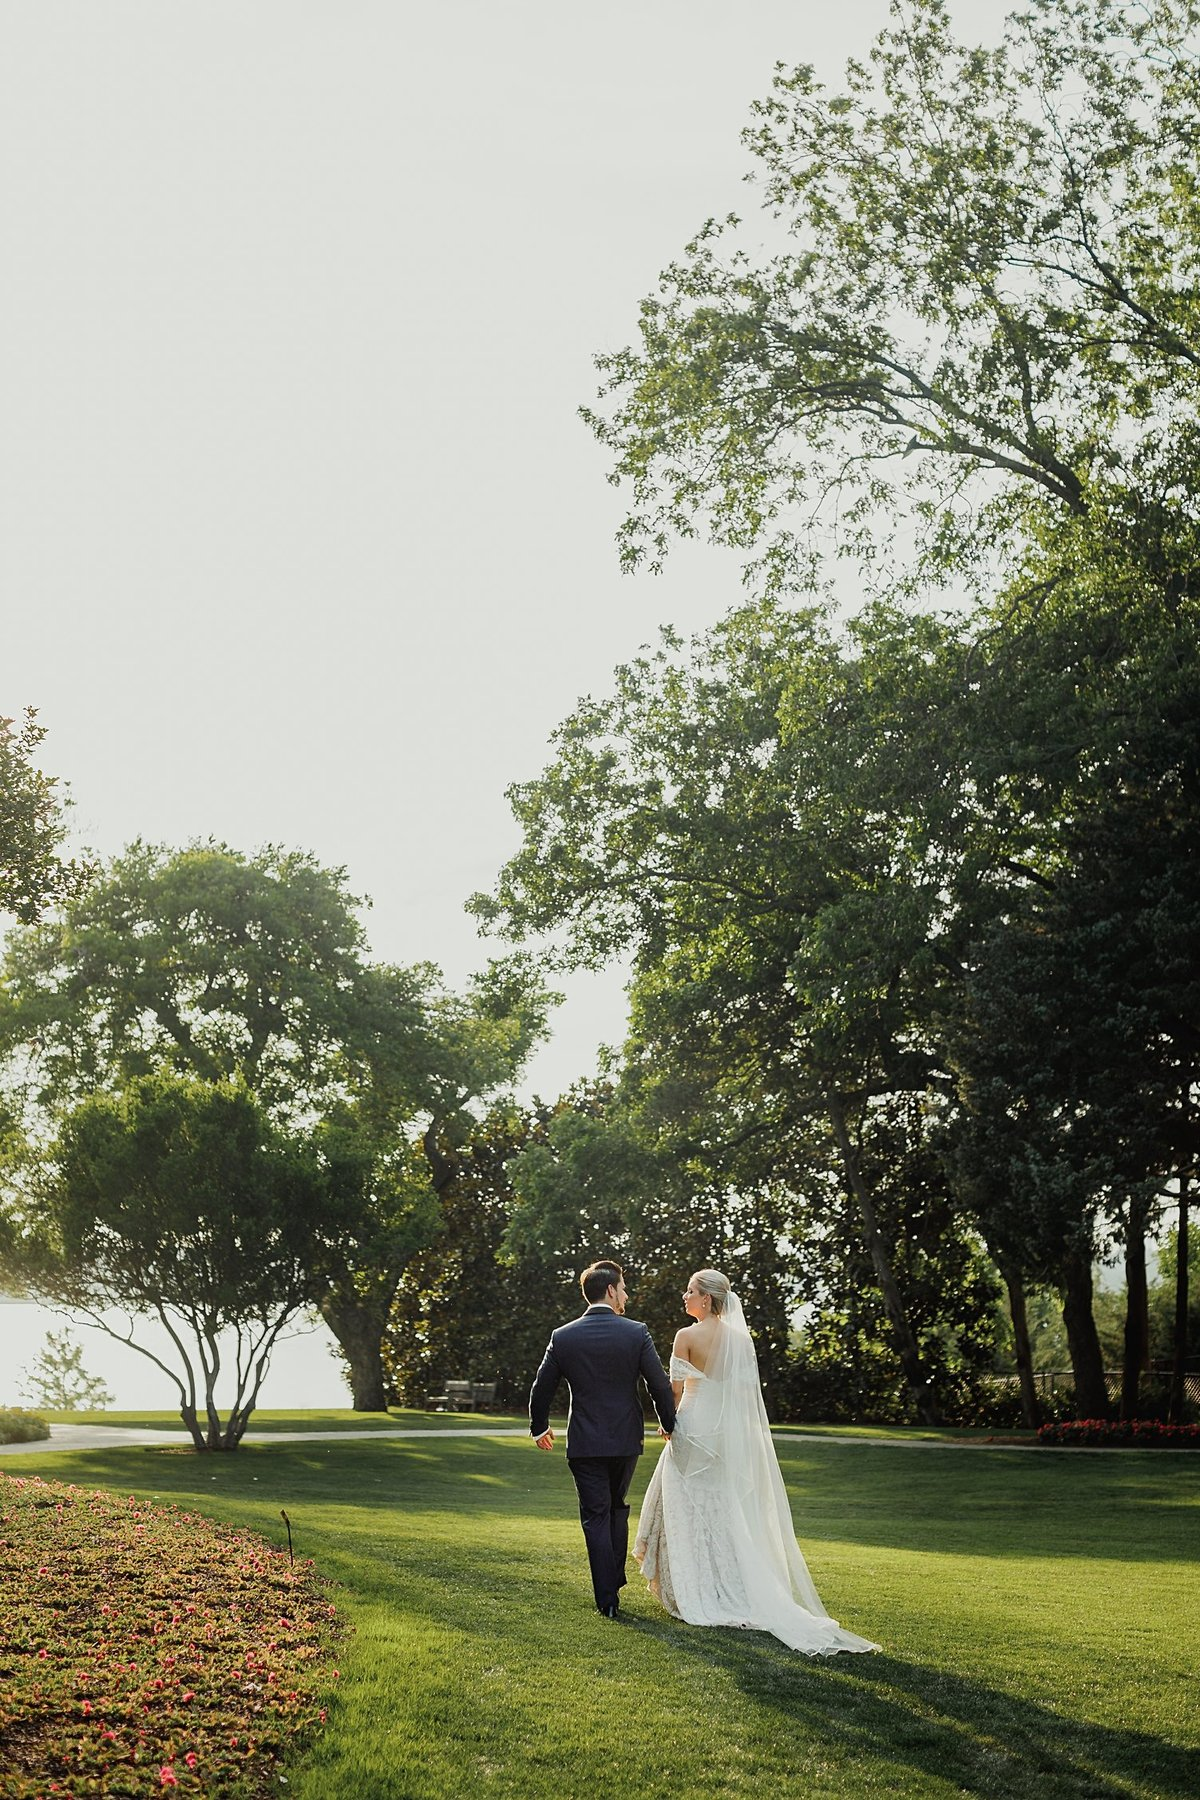 Jeff Brummett Visuals, Wedding Photographer and Destination Elopement Photographer